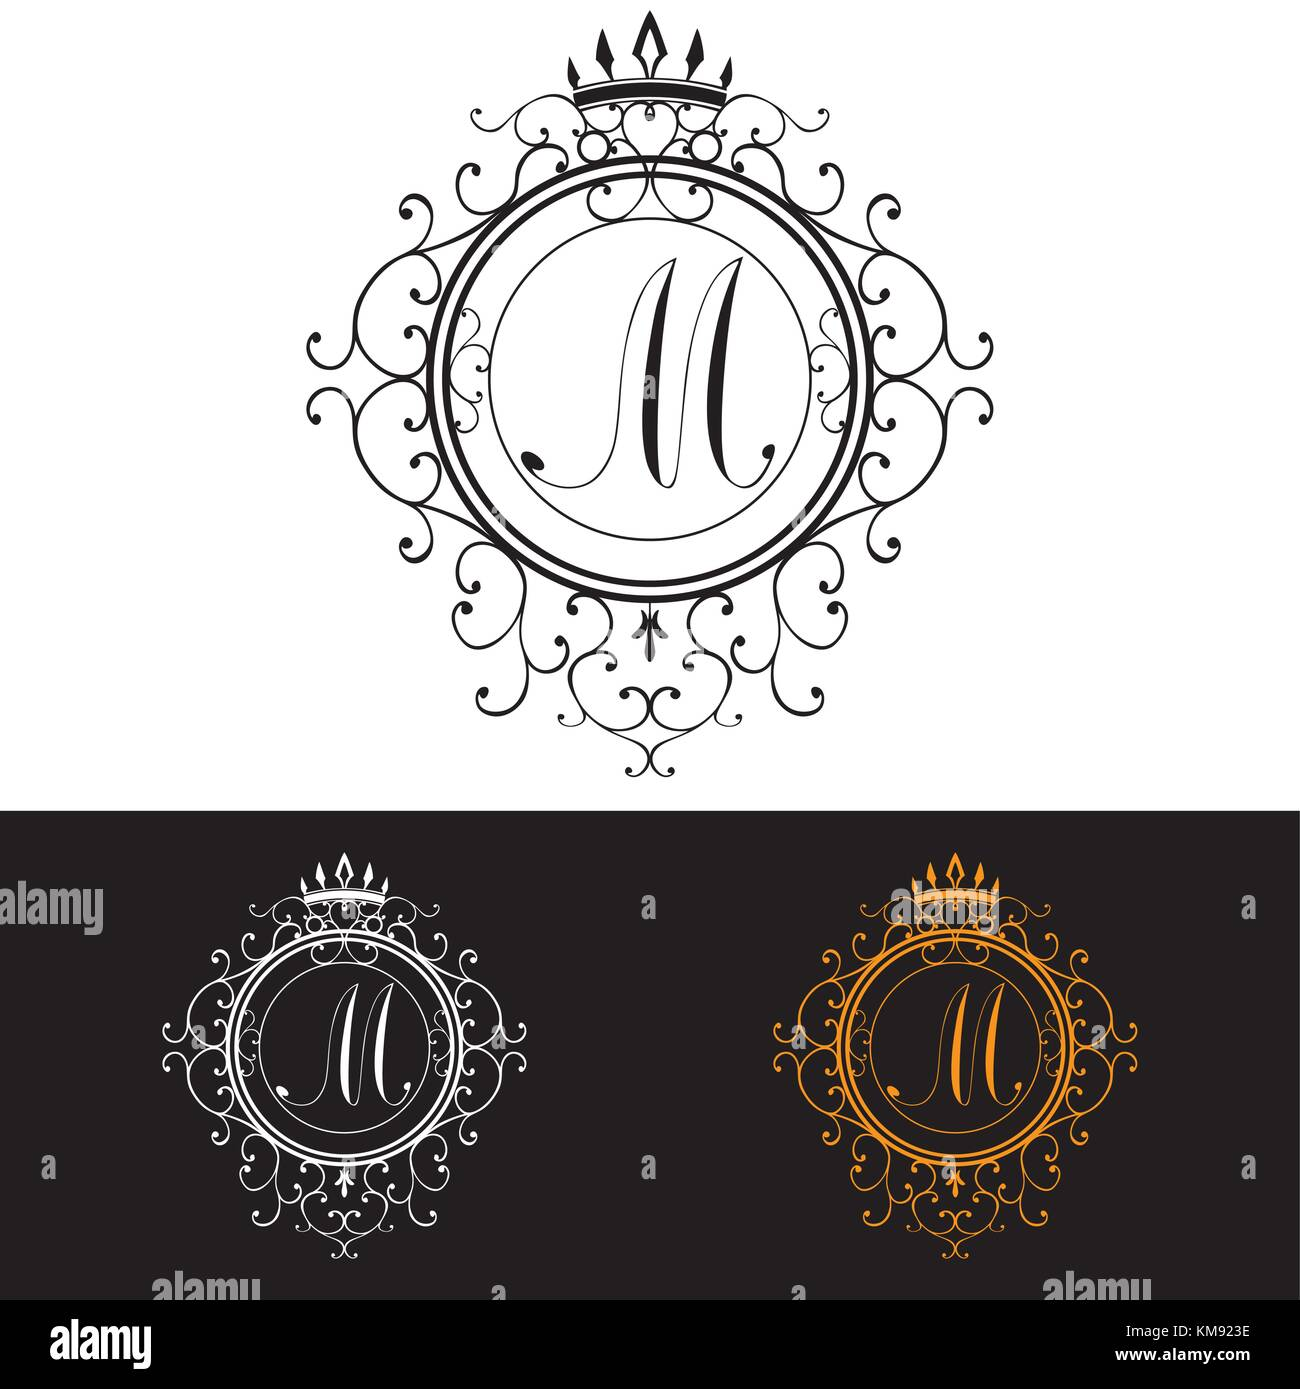 Letter m luxury logo template flourishes calligraphic elegant stock letter m luxury logo template flourishes calligraphic elegant ornament lines business sign identity for restaurant royalty boutique hotel heral wajeb Images